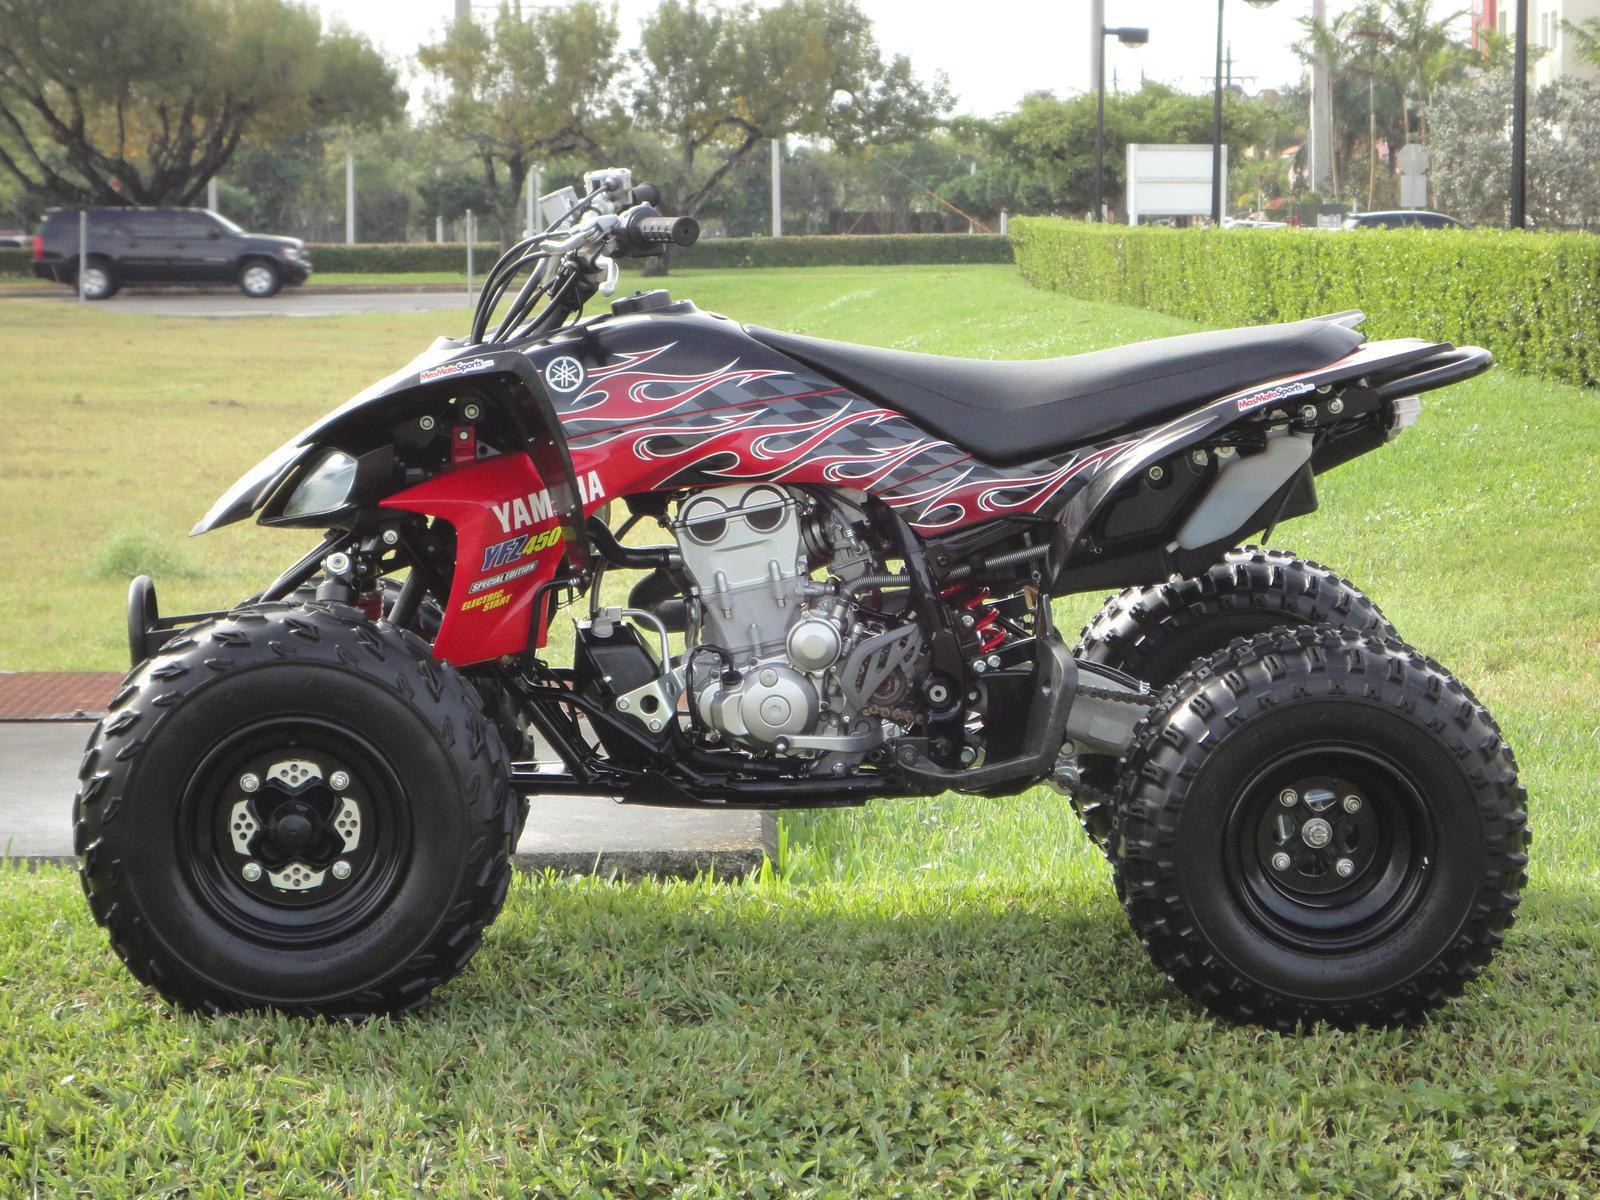 In stock new and used models for sale in miami fl masmotosports 2012 yfz450 yamaha publicscrutiny Images